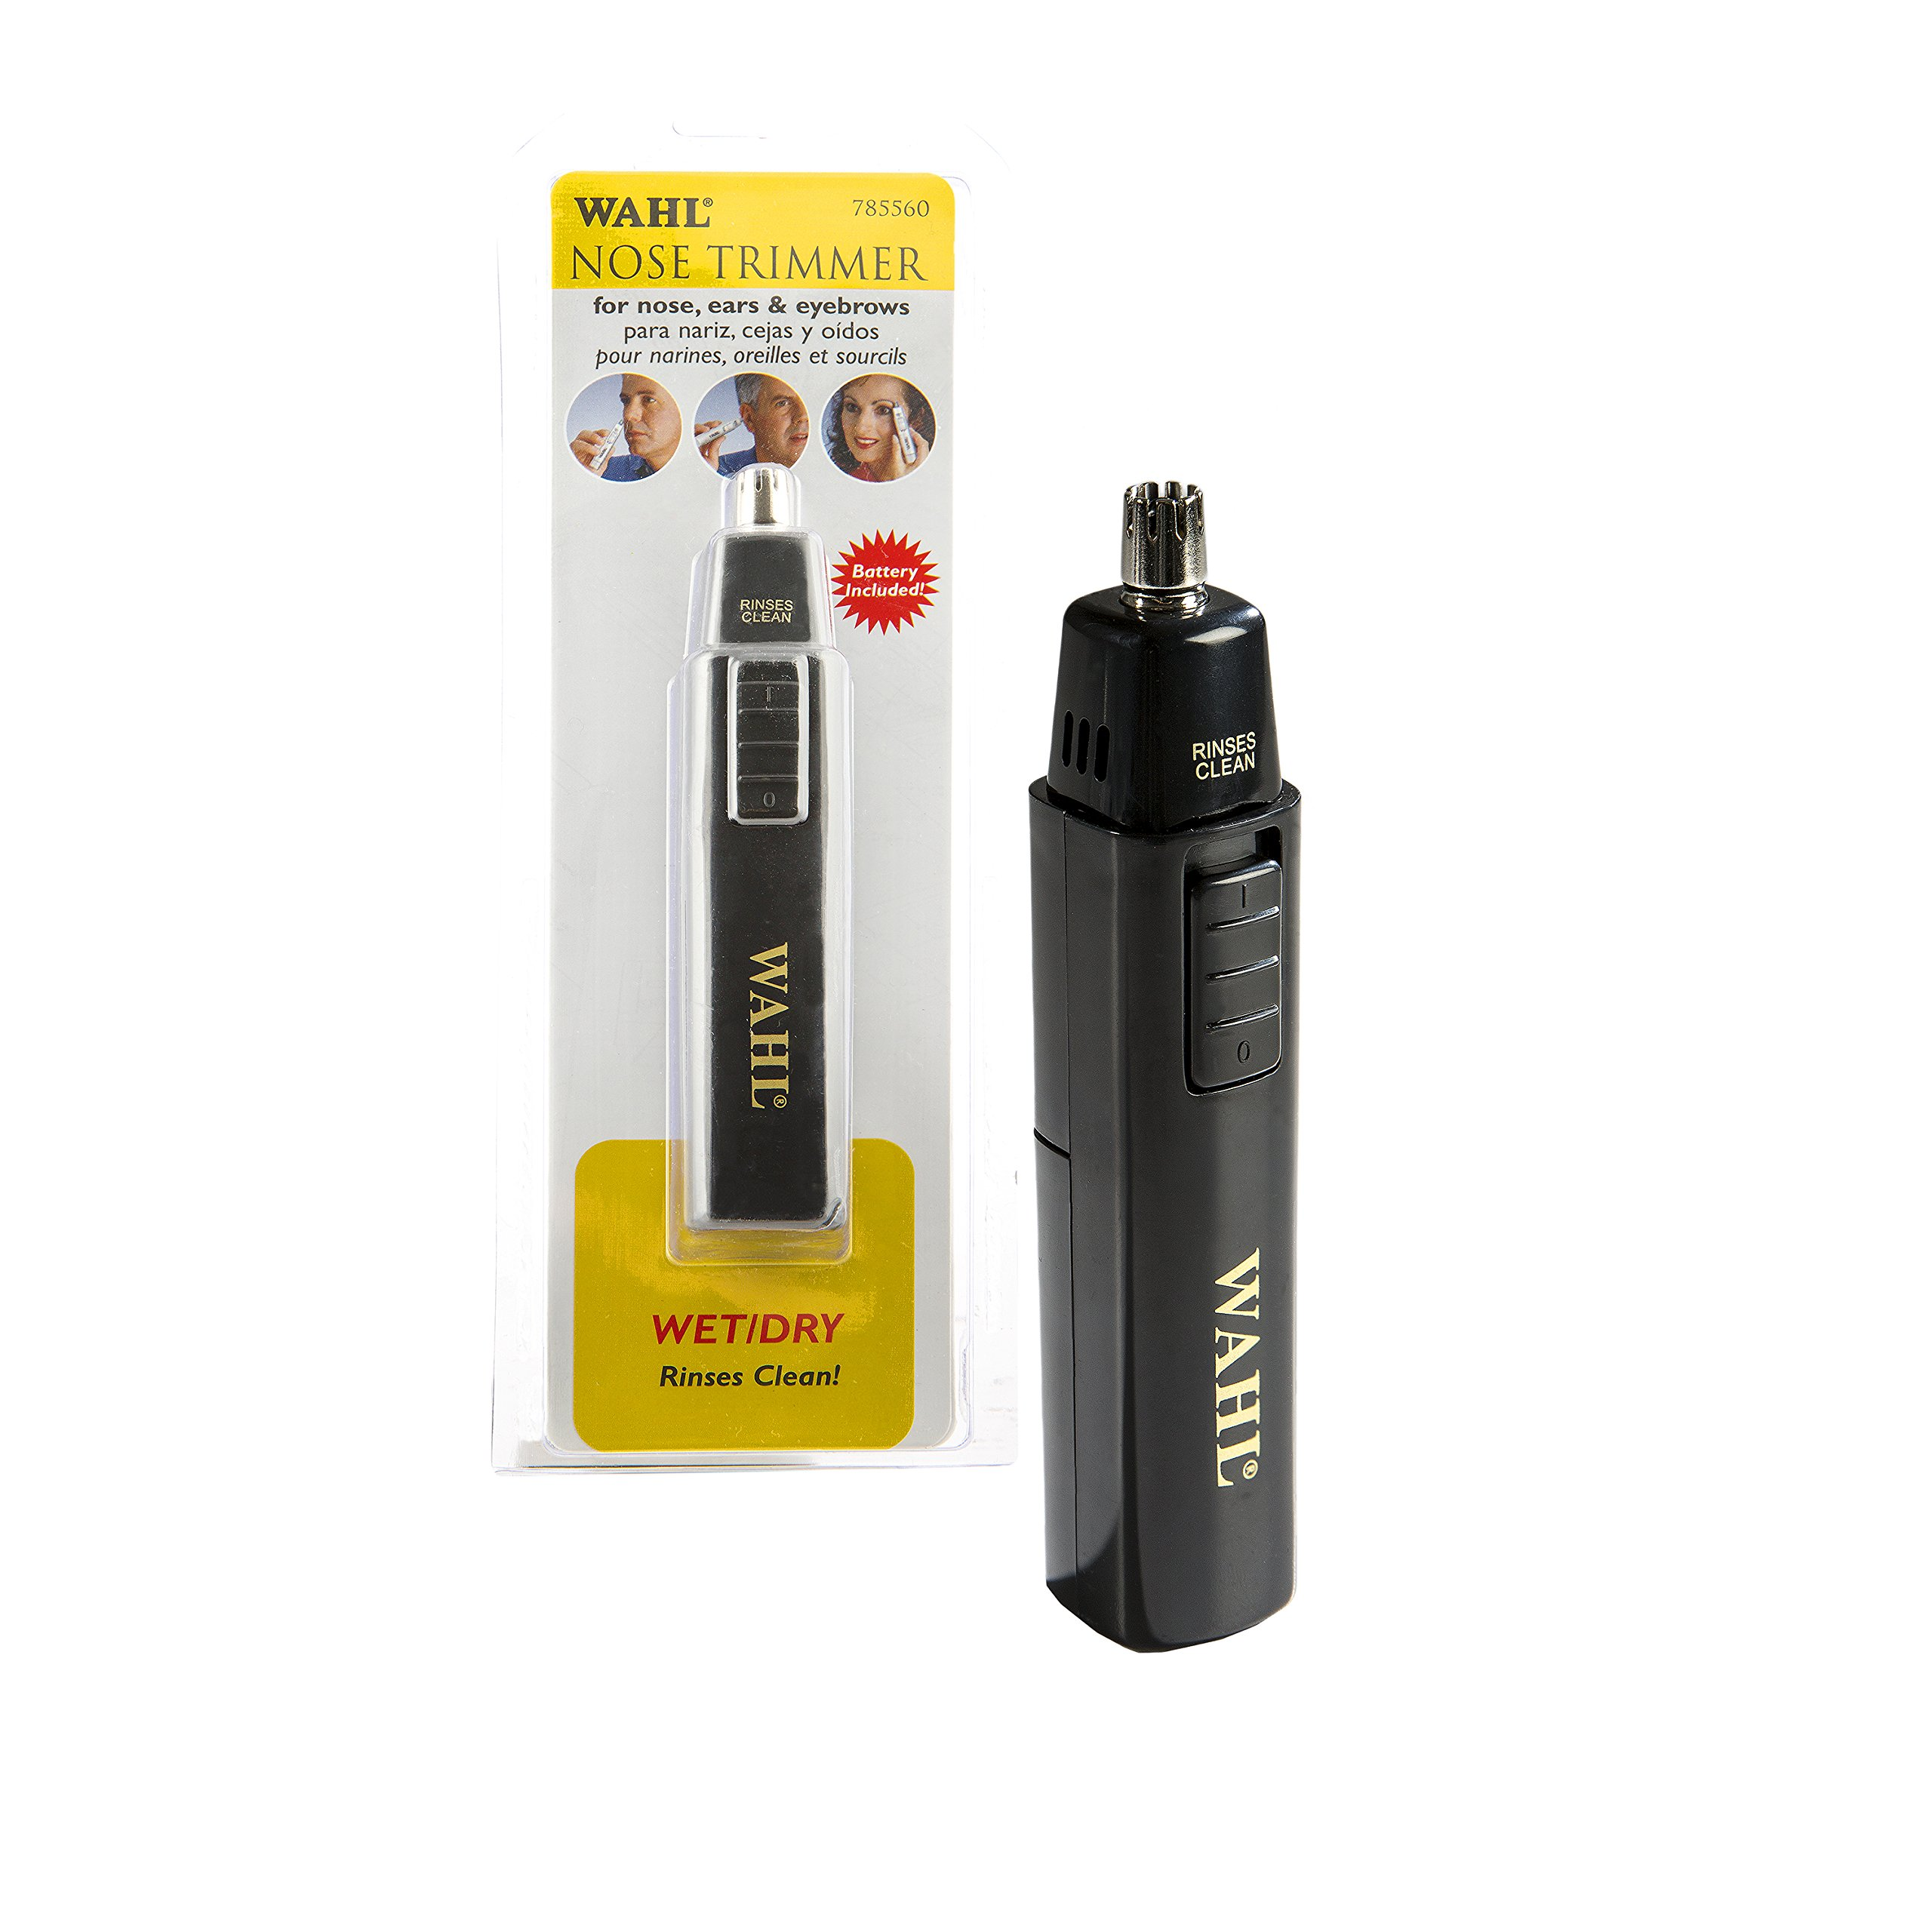 Wahl Professional Nose Trimmer #5560-700 - Great for Barbers and Stylists - Stainless Steel Blade Works Wet or Dry - Battery Operated - Accessories Included by Wahl Professional